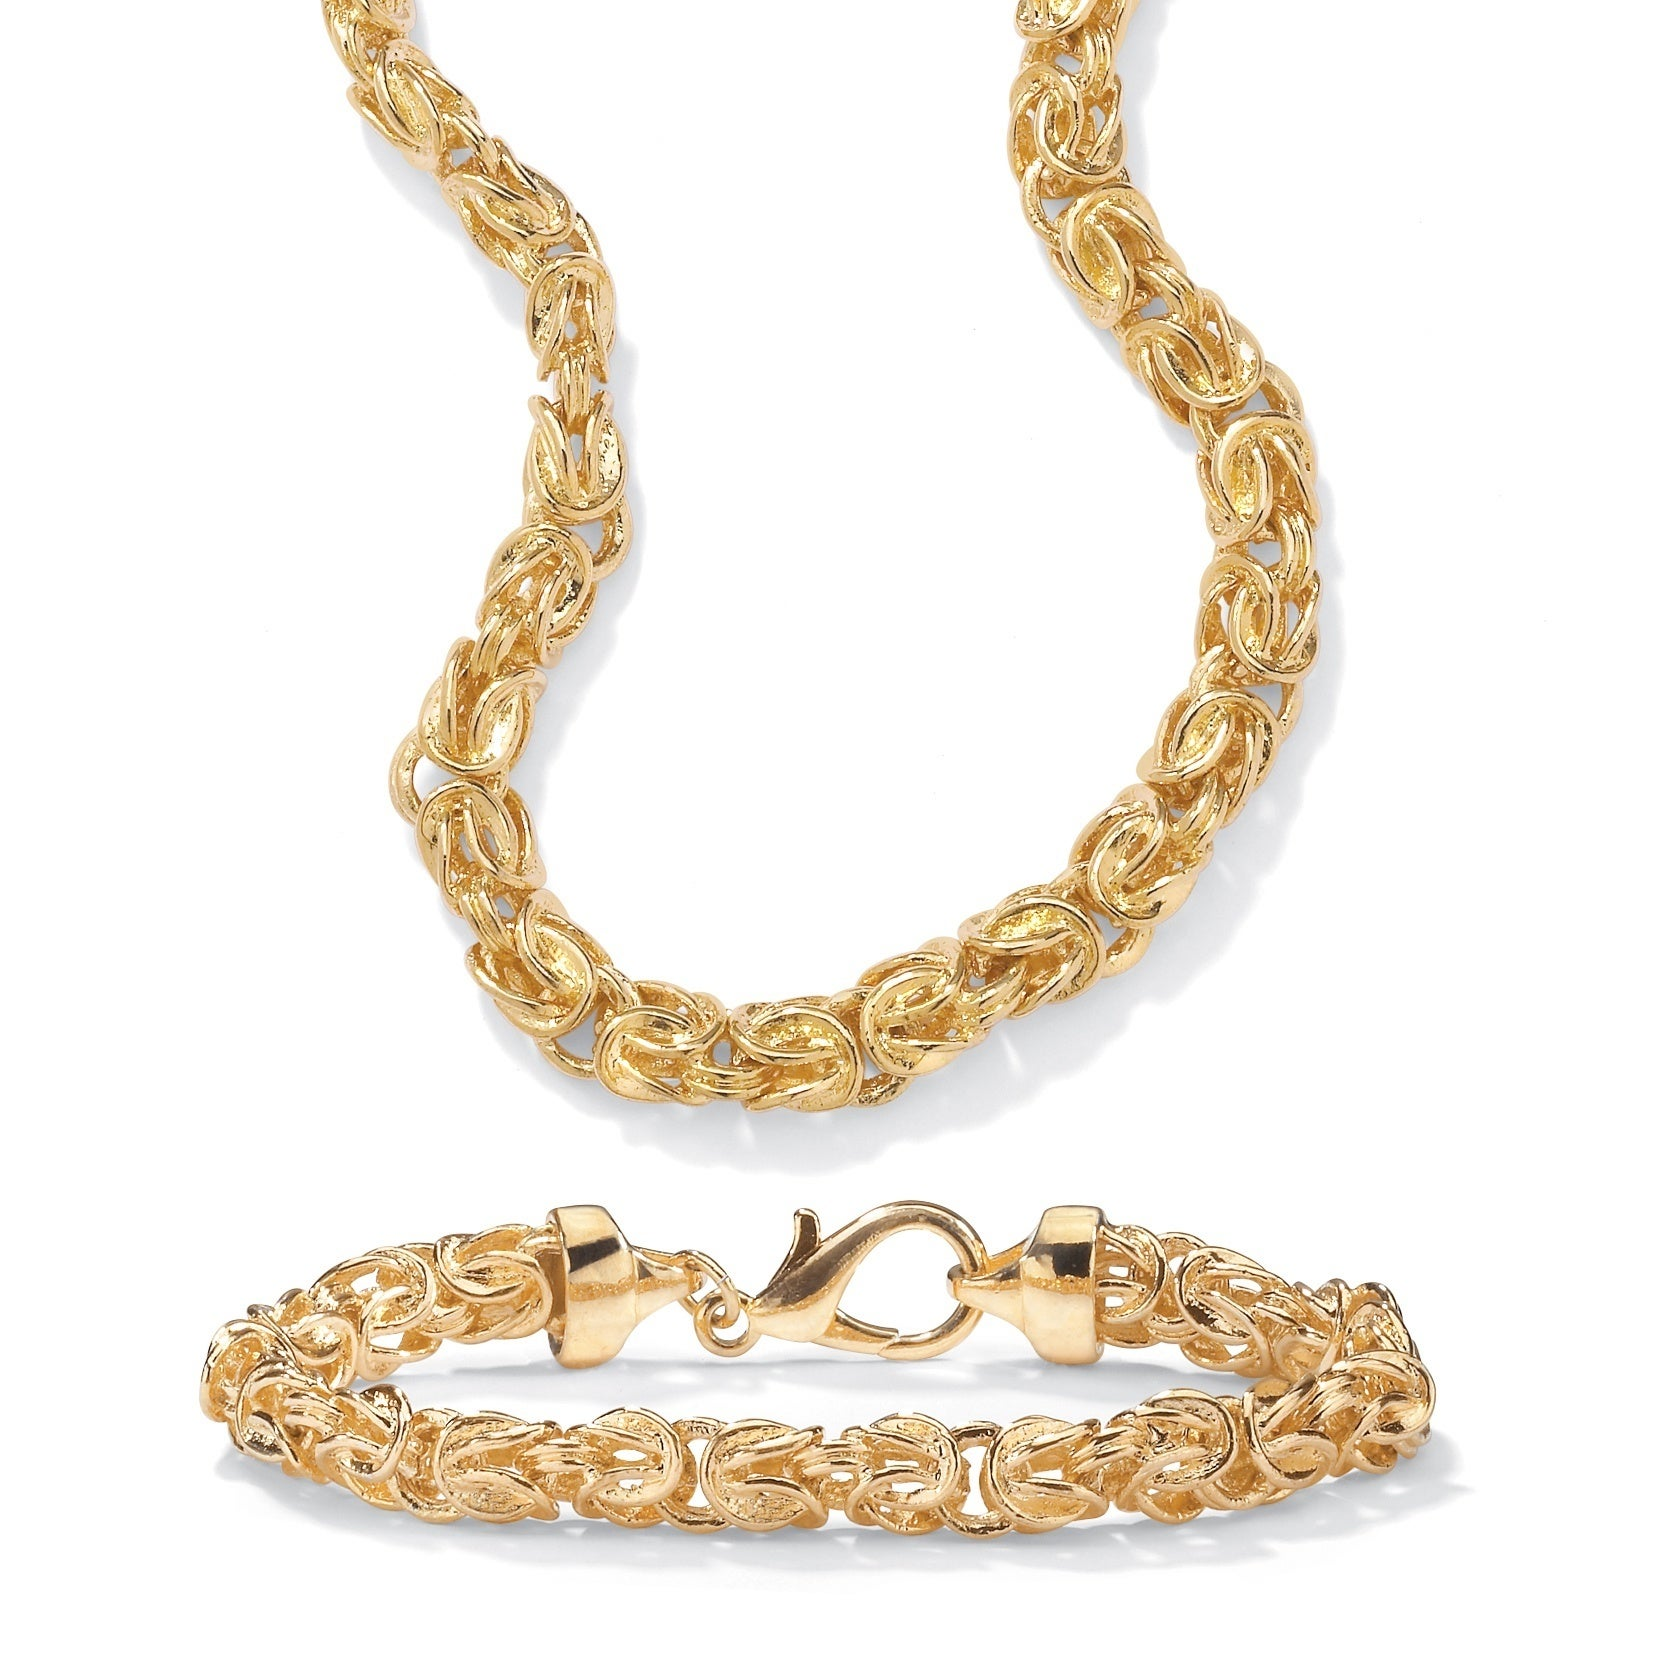 Palm Beach 14k Gold-Plated Byzantine-Link Necklace and Br...